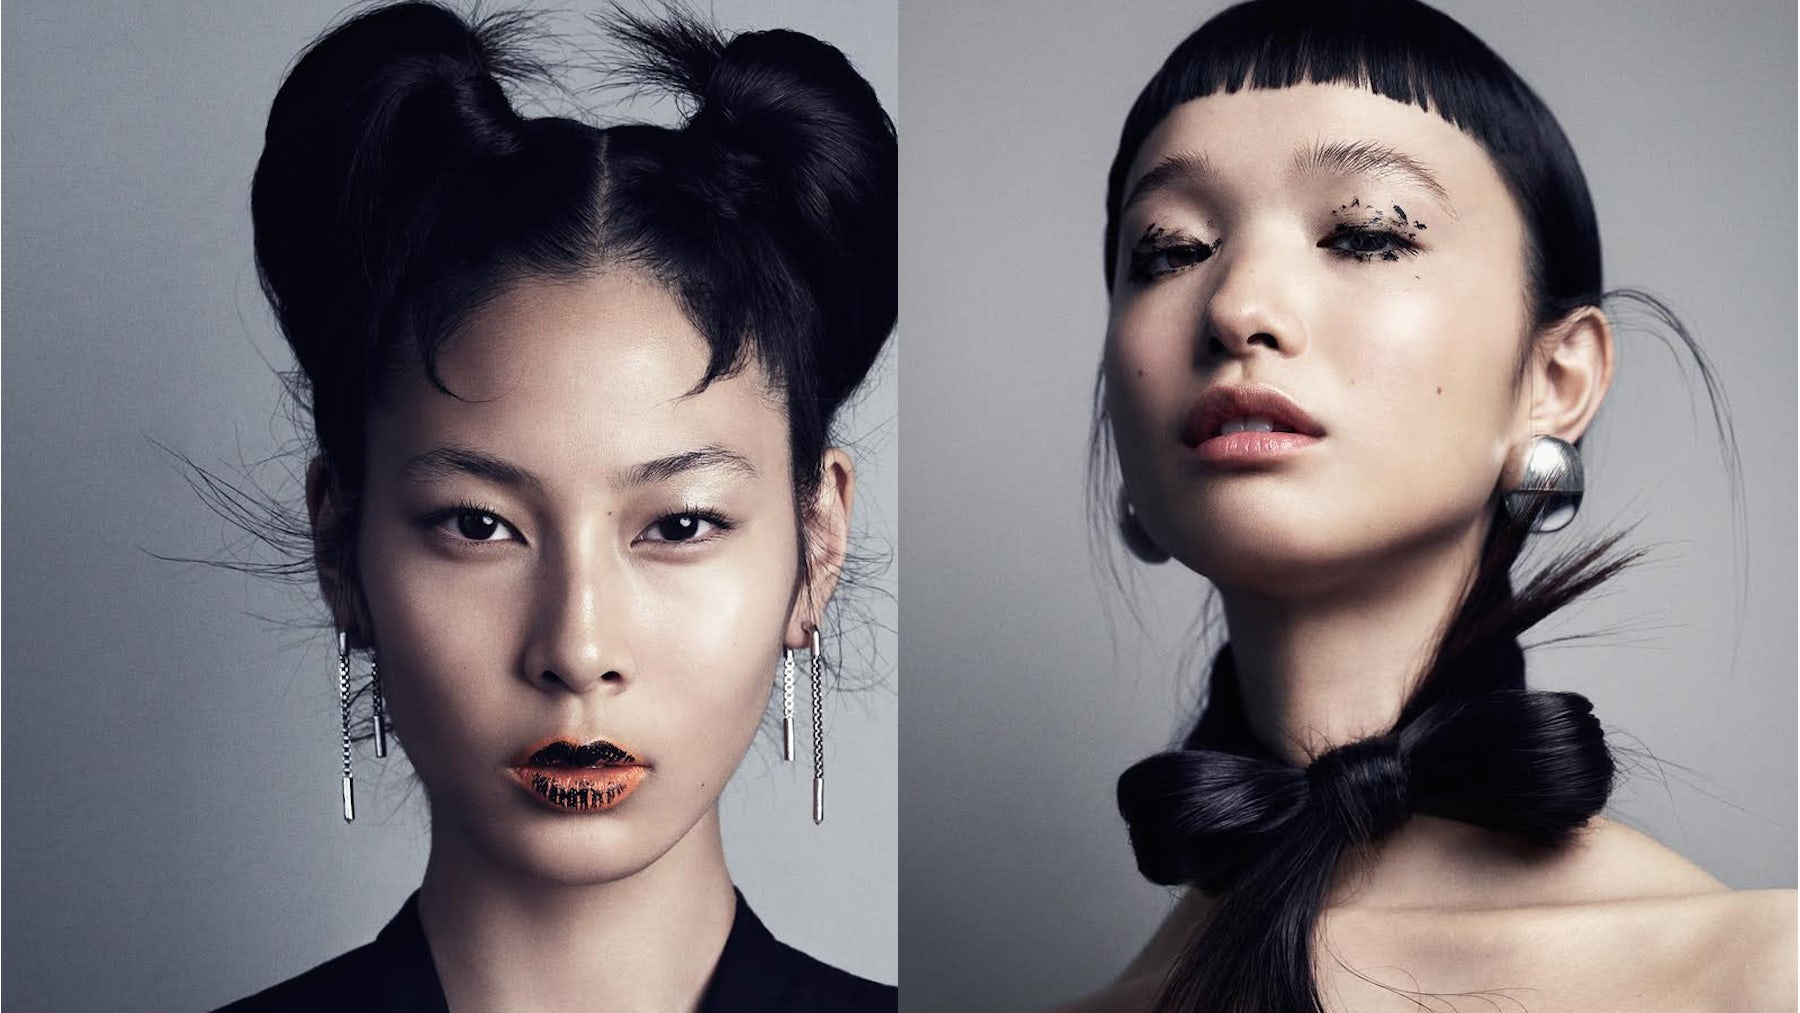 Portraits for 'The Face of Asia' shot by Marcus Ohlsson for Vogue Japan September 2016